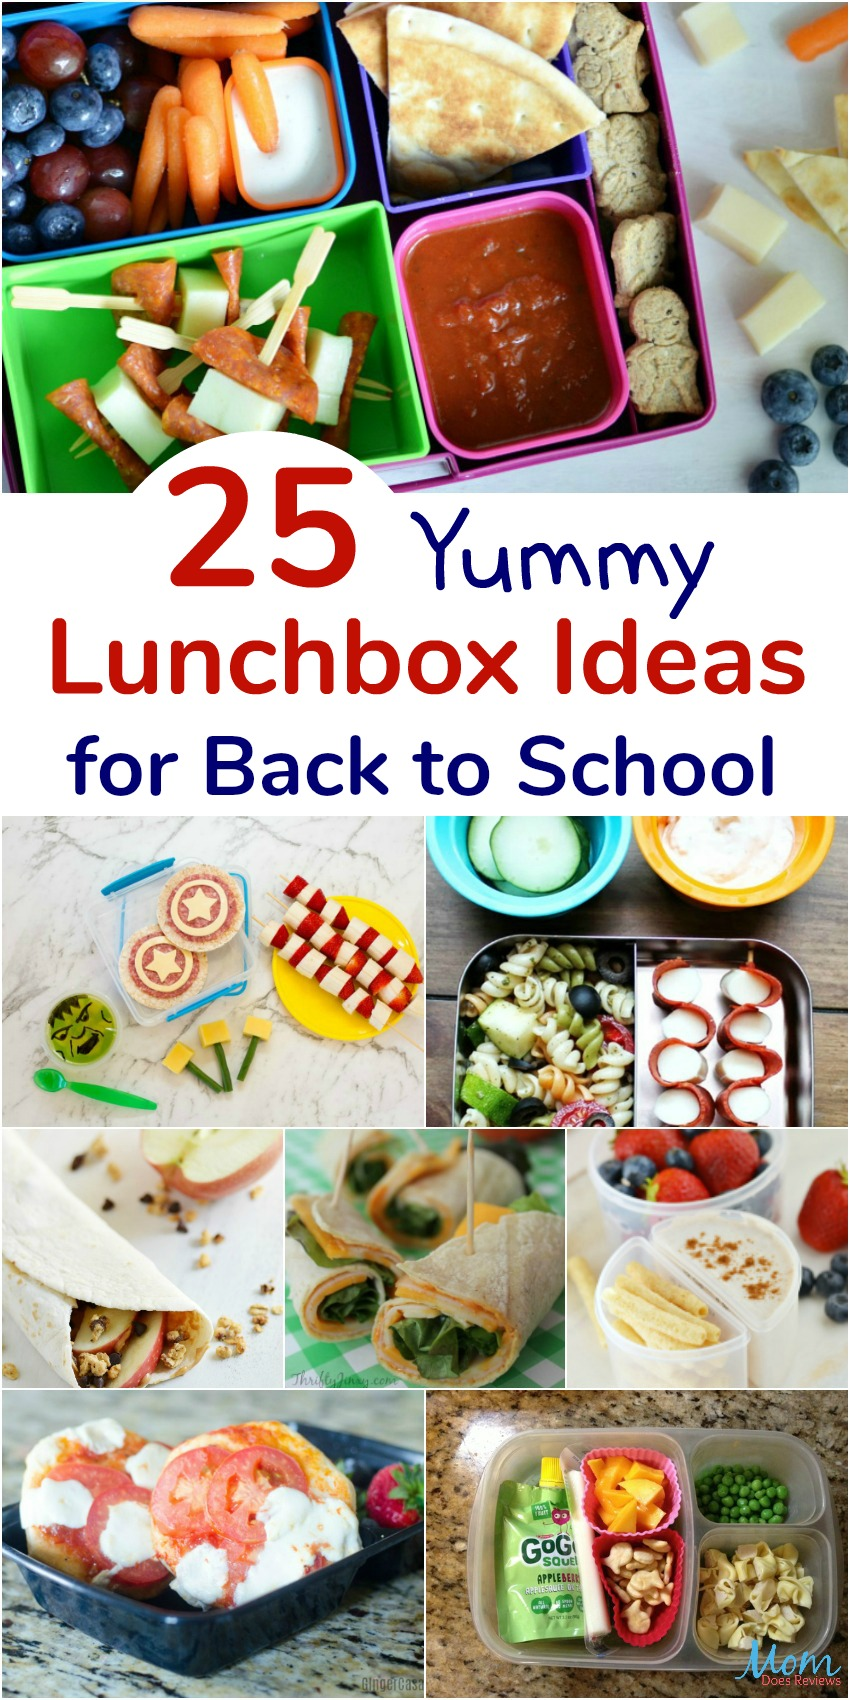 25 Easy Lunchbox Ideas for Back to School Your Child Will Love